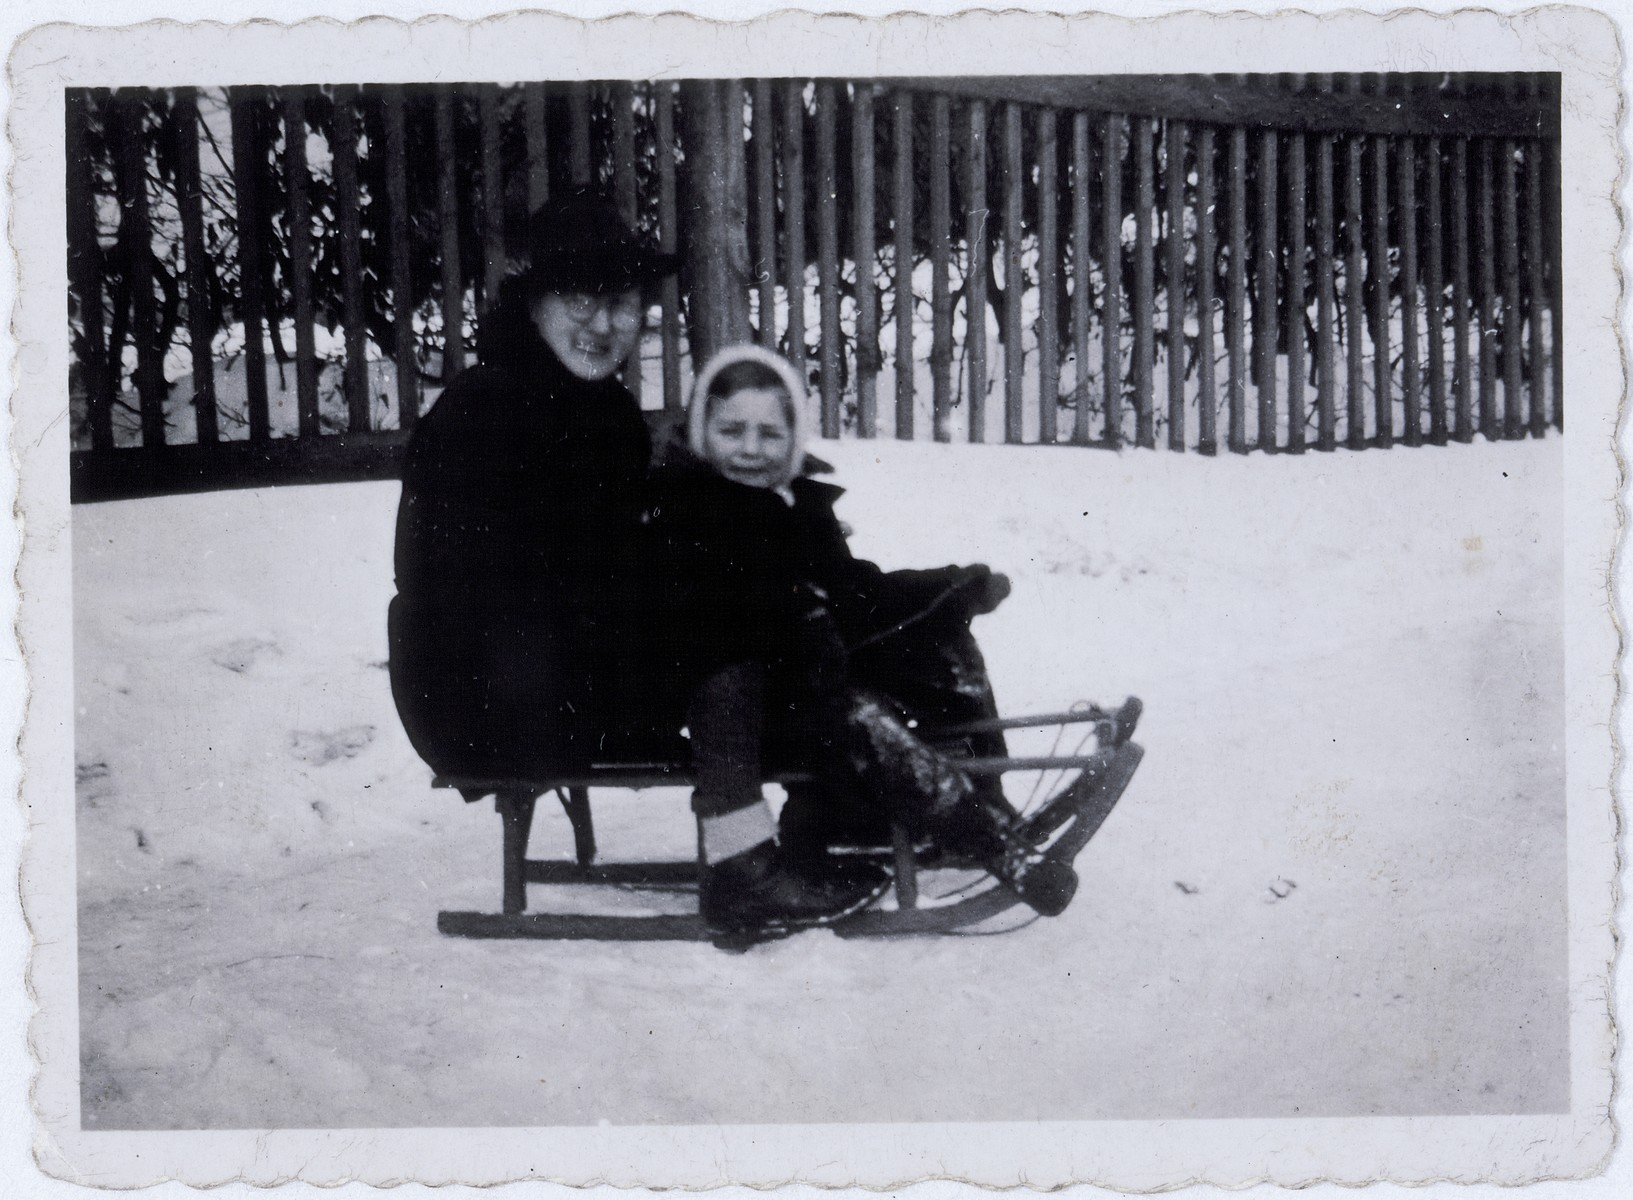 Erna Fritsche Haar and her son Roman Haar on a sled in the Rzeszow Ghetto.